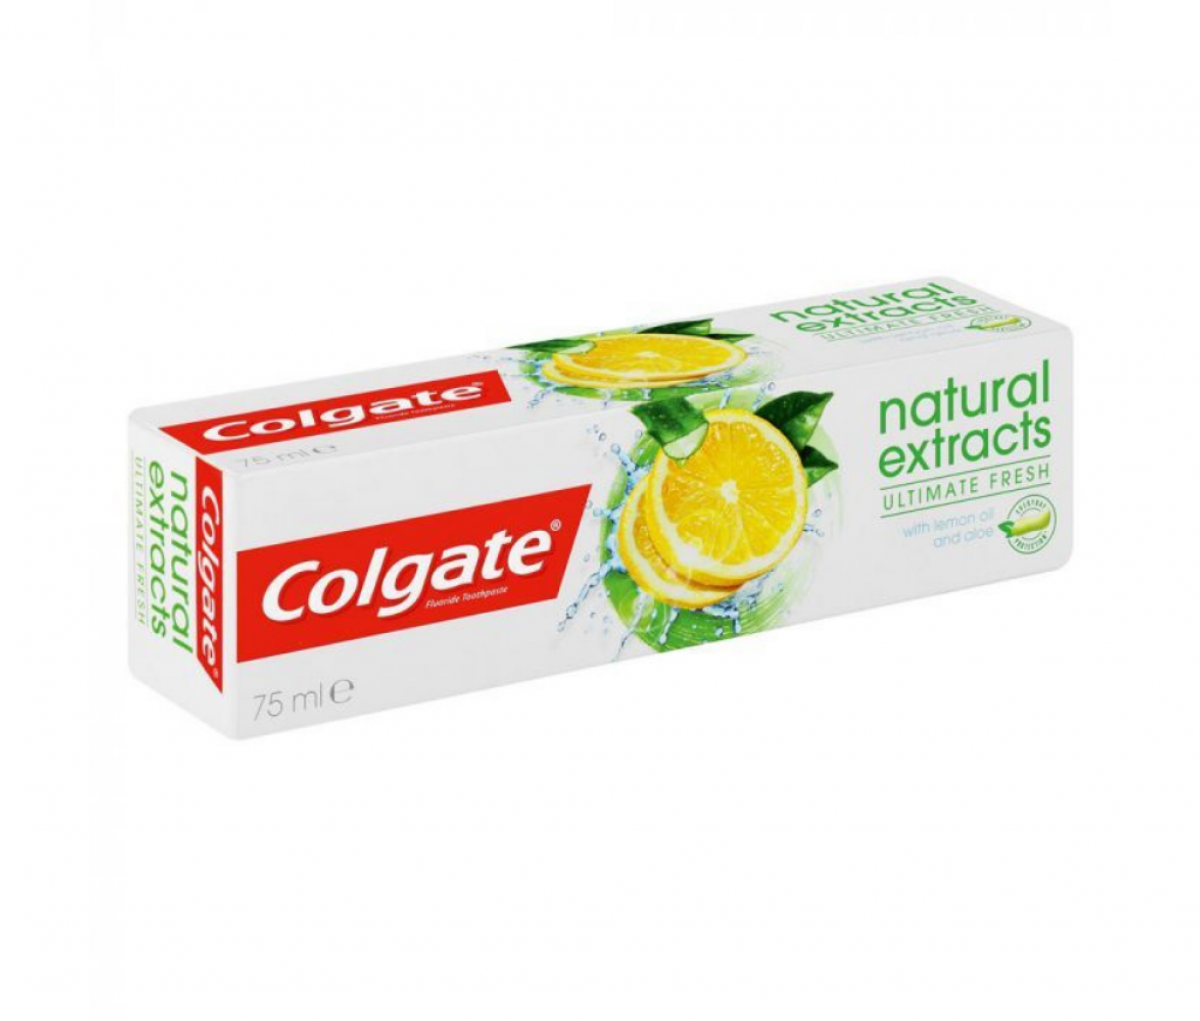 Colgate 75ml Natural Extracts Ultimate Fresh